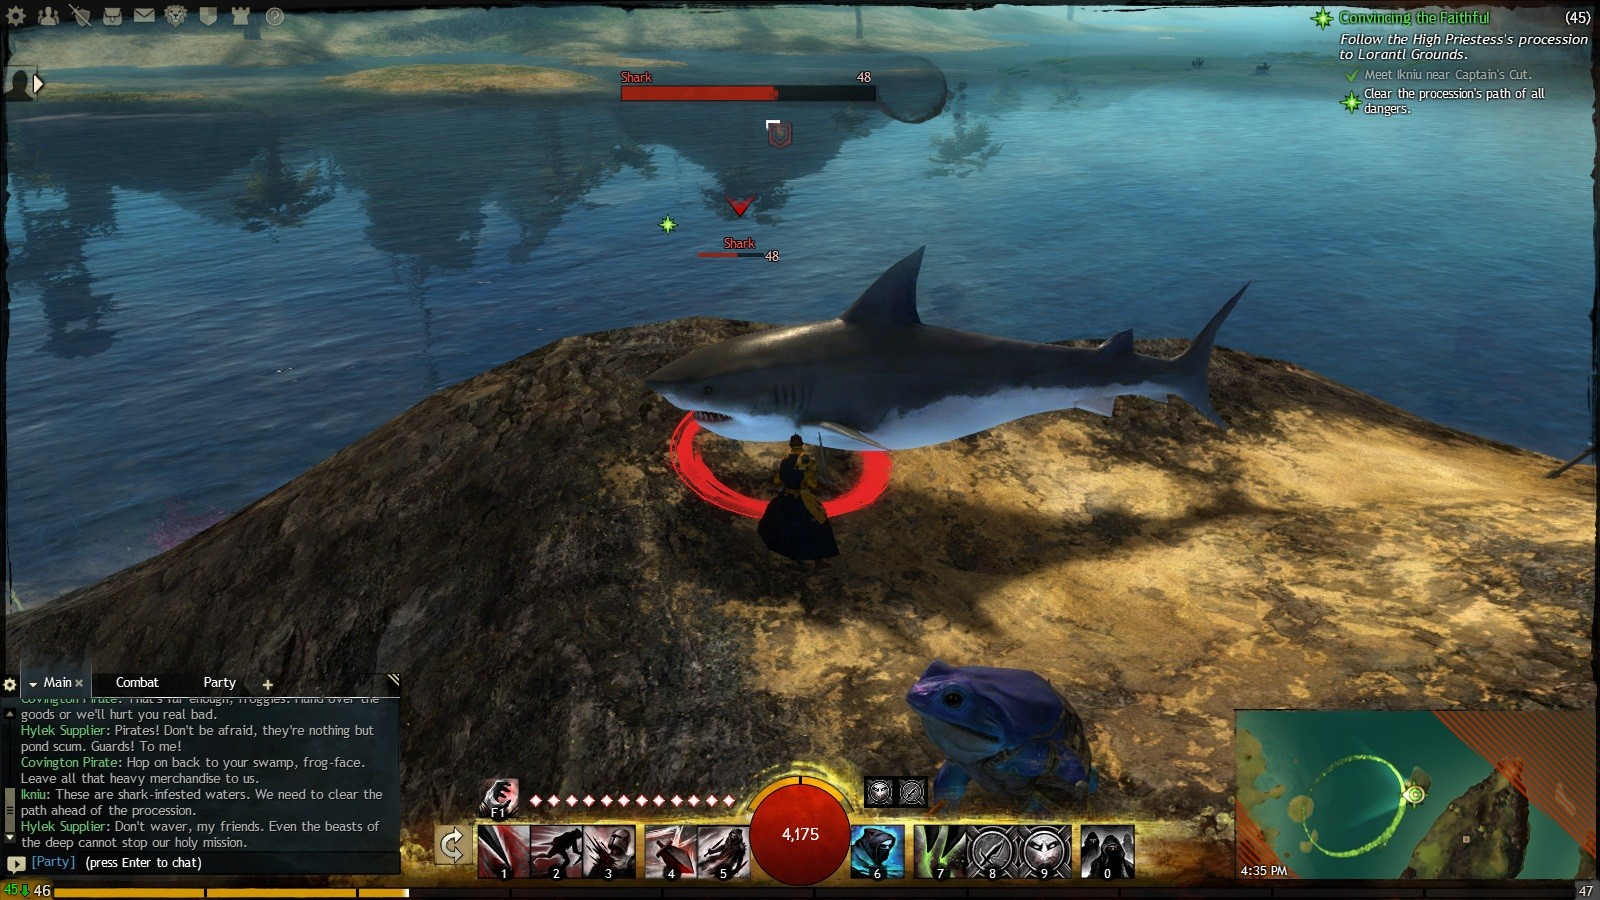 Guild Wars 2 - Just chilling with my buddy